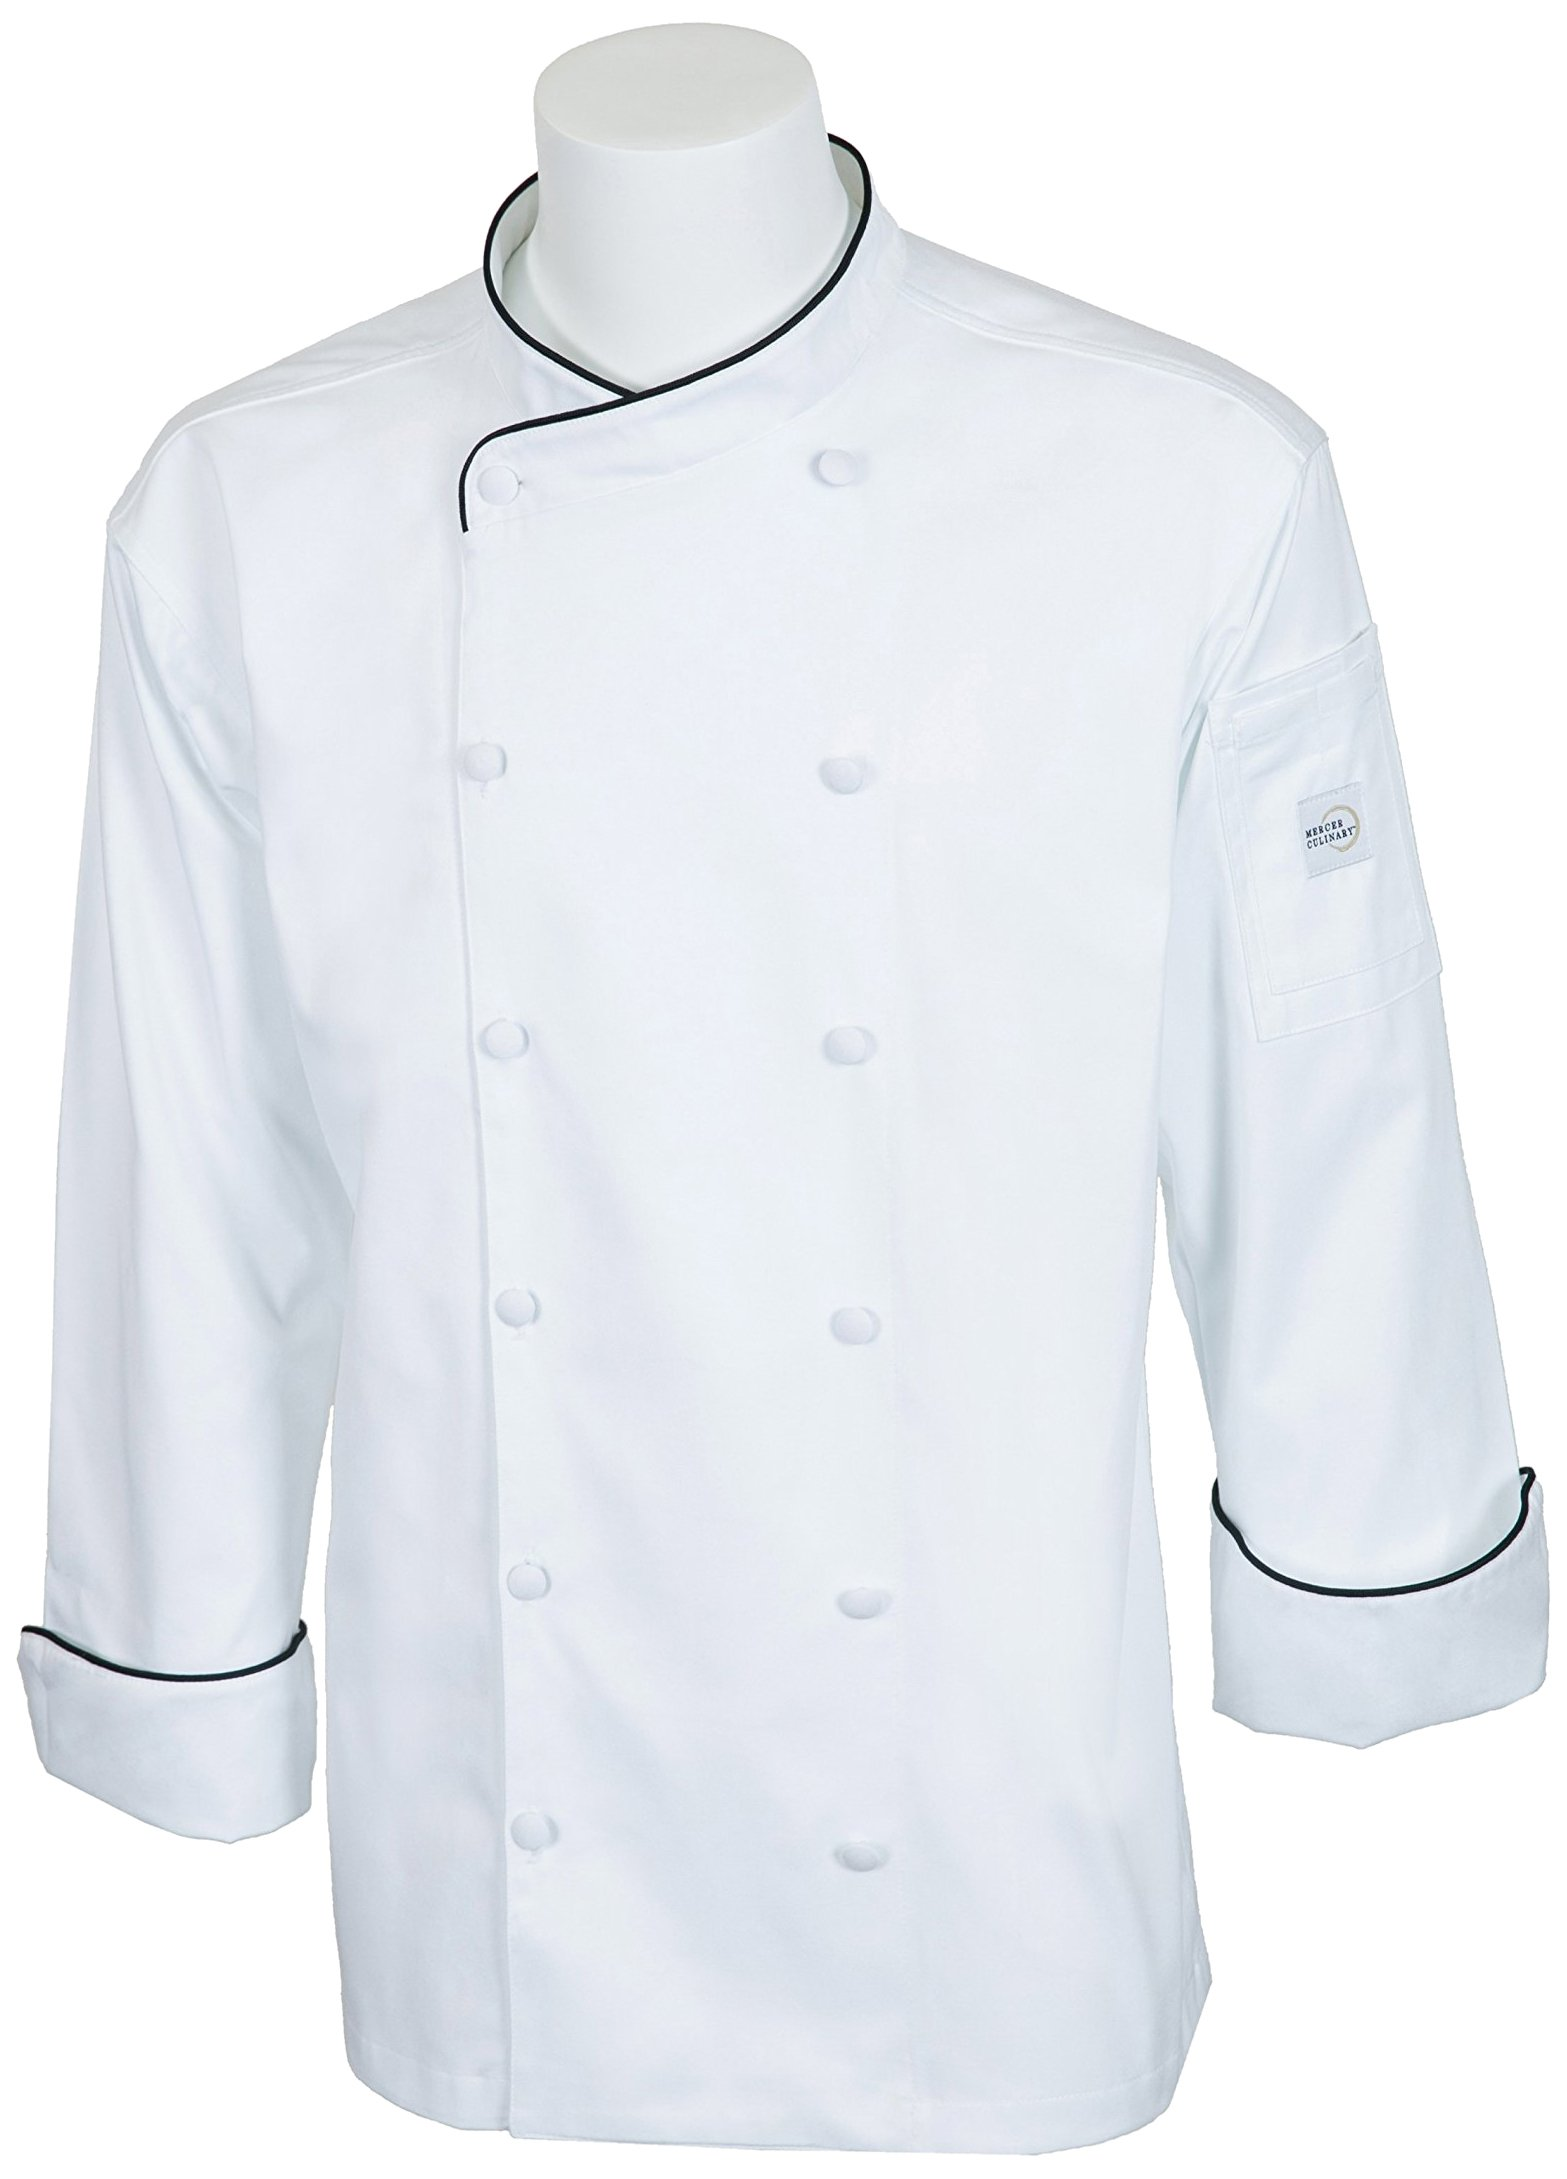 Mercer Culinary M62020WB2X Renaissance Men's Scoop Neck Chef Jacket, XX-Large, White with Black Piping by Mercer Culinary